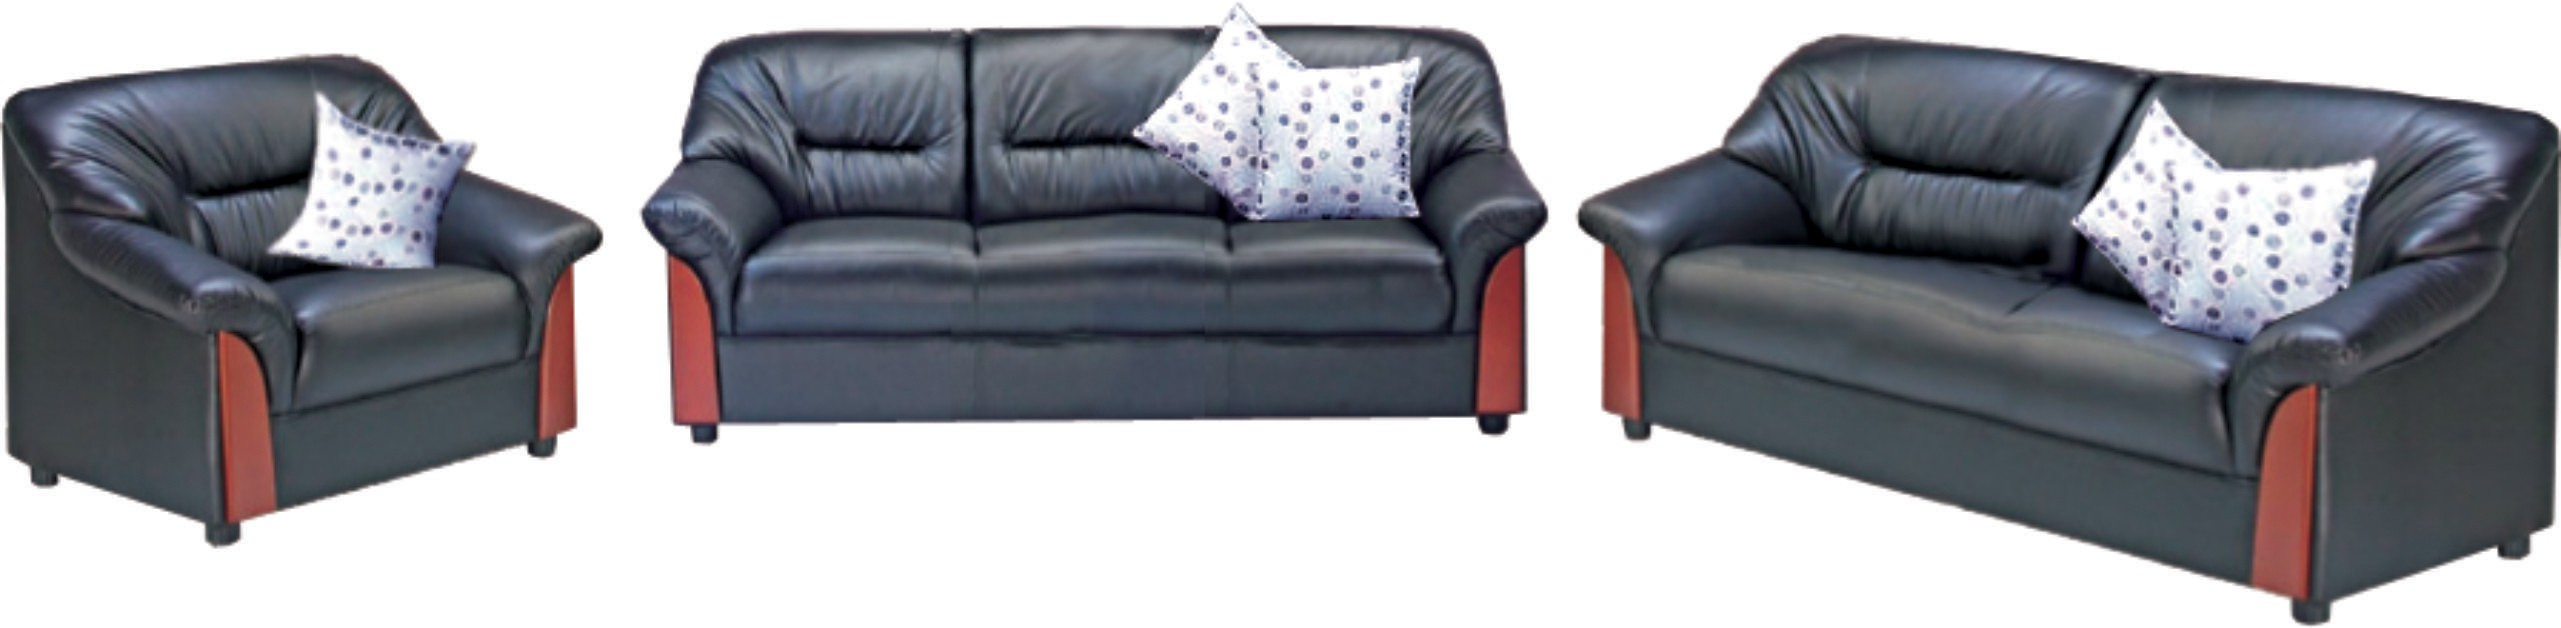 Godrej interio parto sofa set solid wood 3 2 1 sofa set furniture price in indian cities Godrej interio home furniture price list